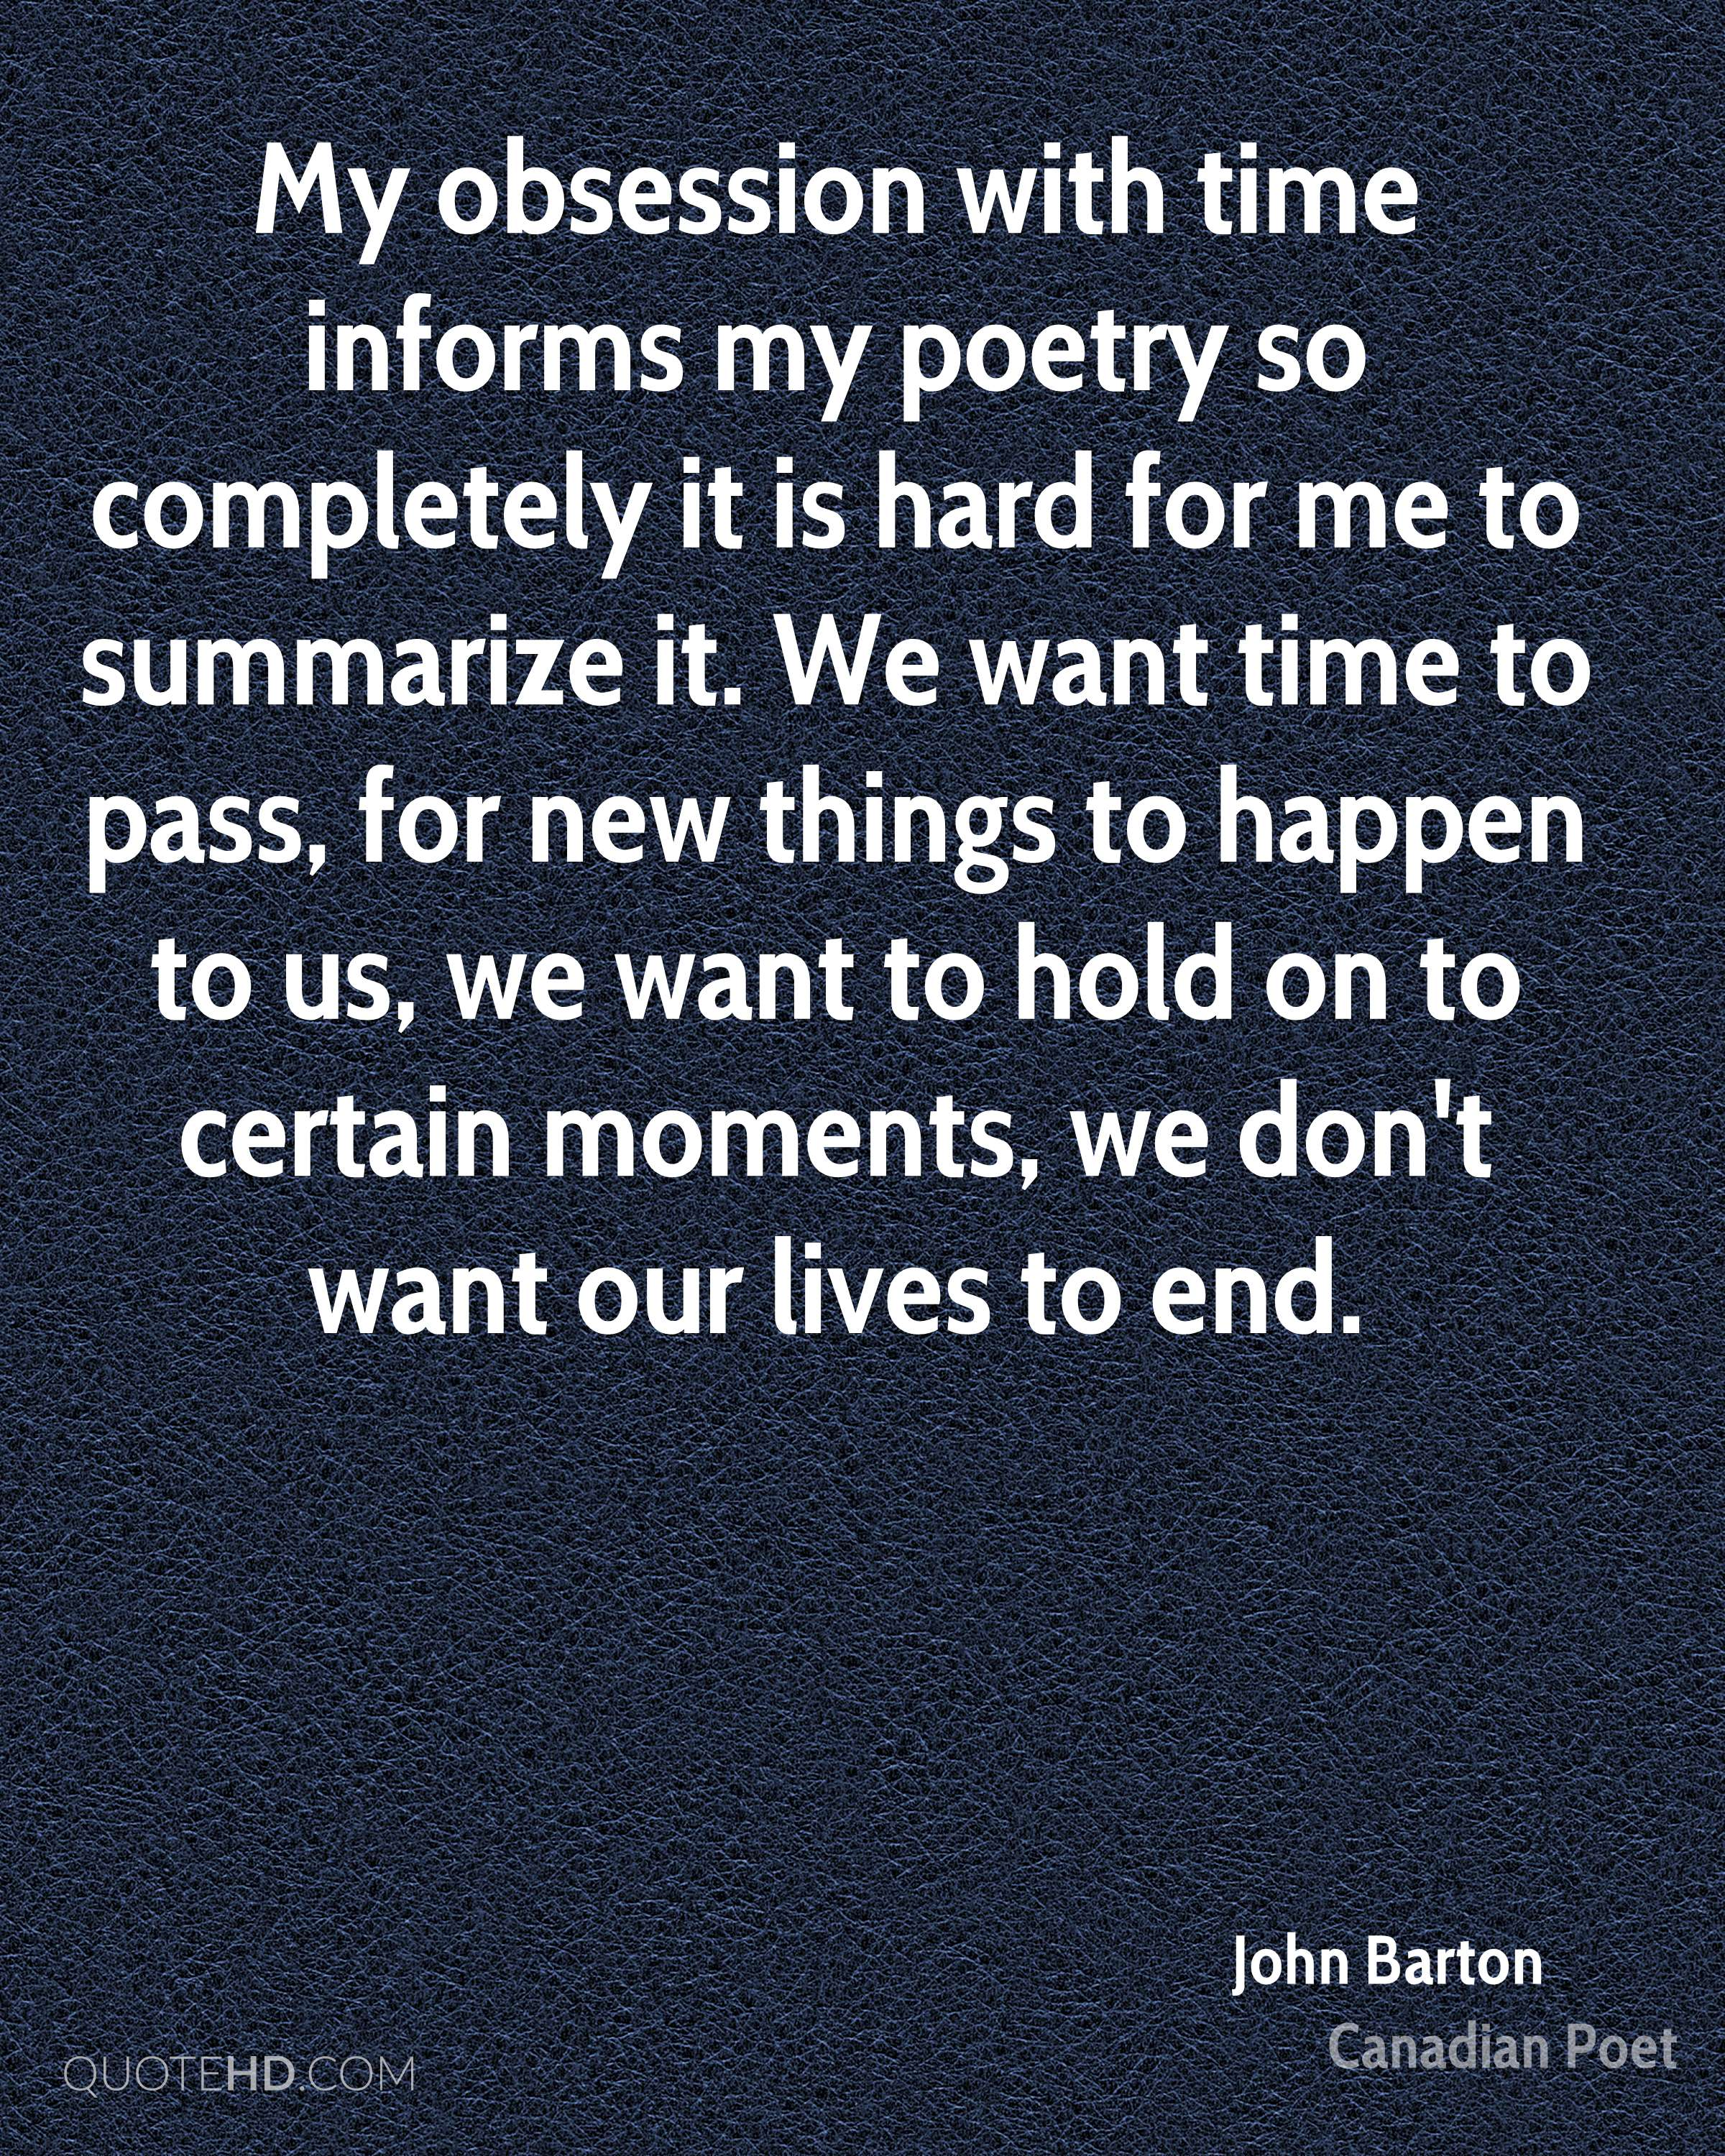 My obsession with time informs my poetry so completely it is hard for me to summarize it. We want time to pass, for new things to happen to us, we want to hold on to certain moments, we don't want our lives to end.